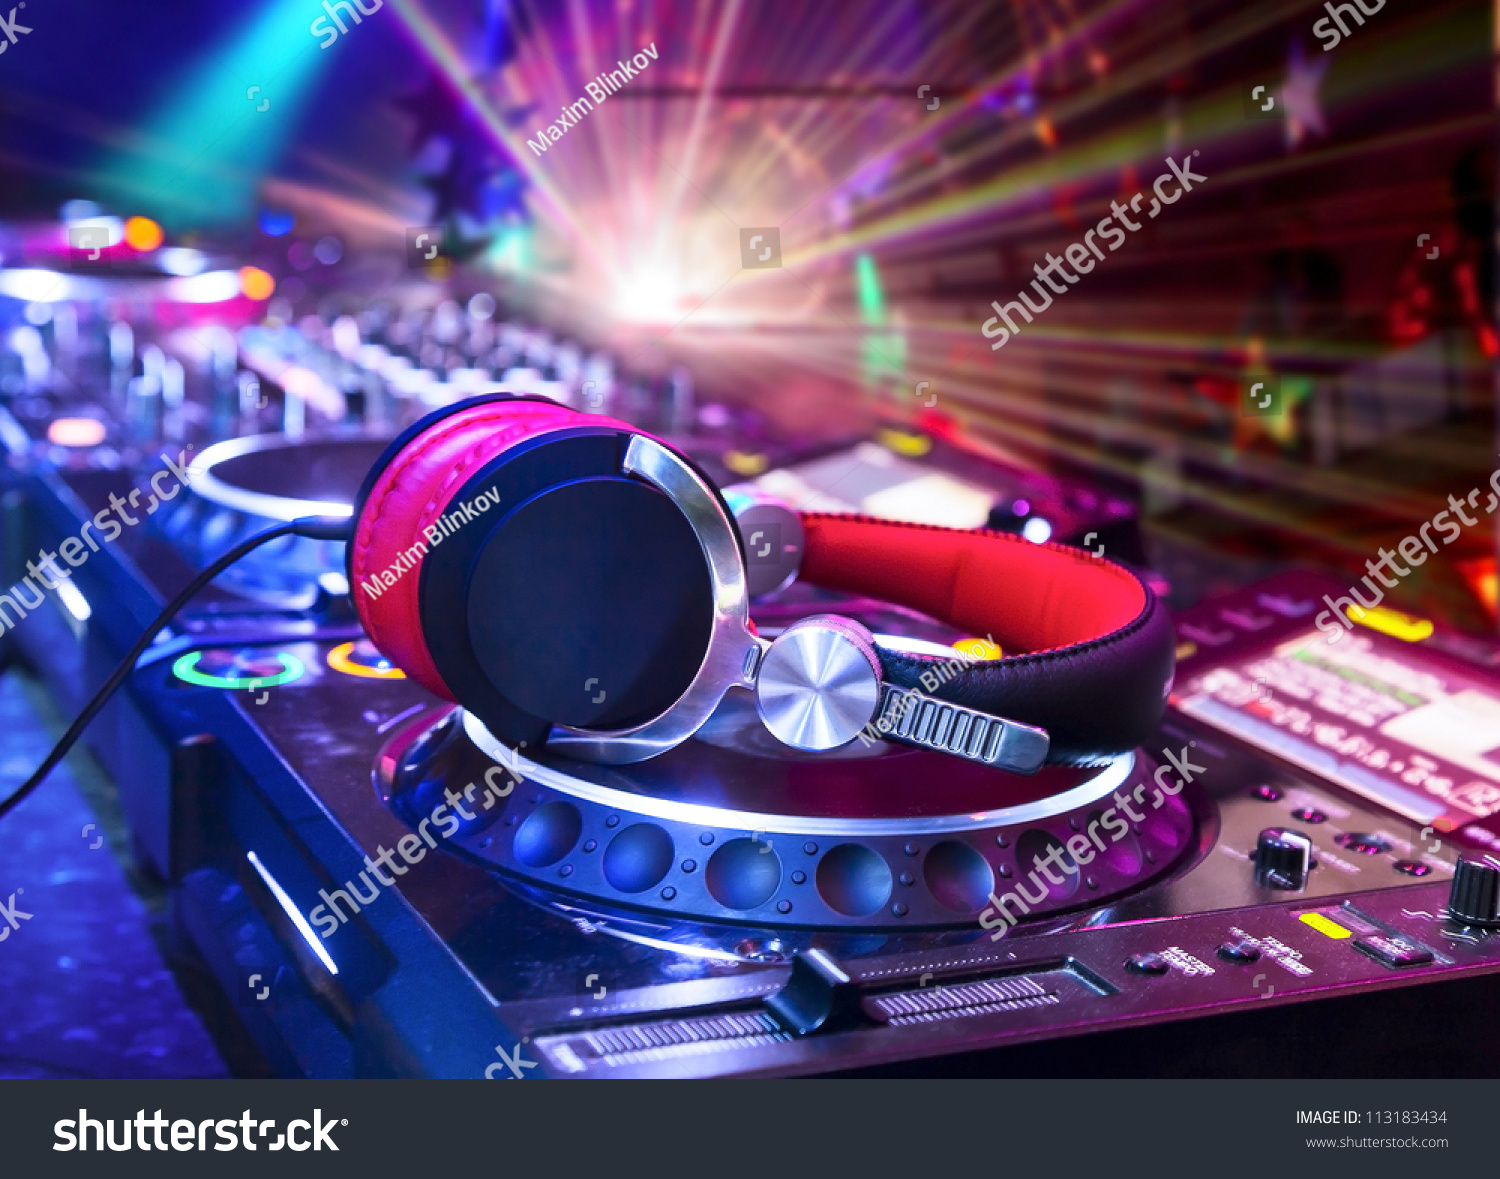 Dj mixer with headphones at nightclub.  In the background laser light show #113183434